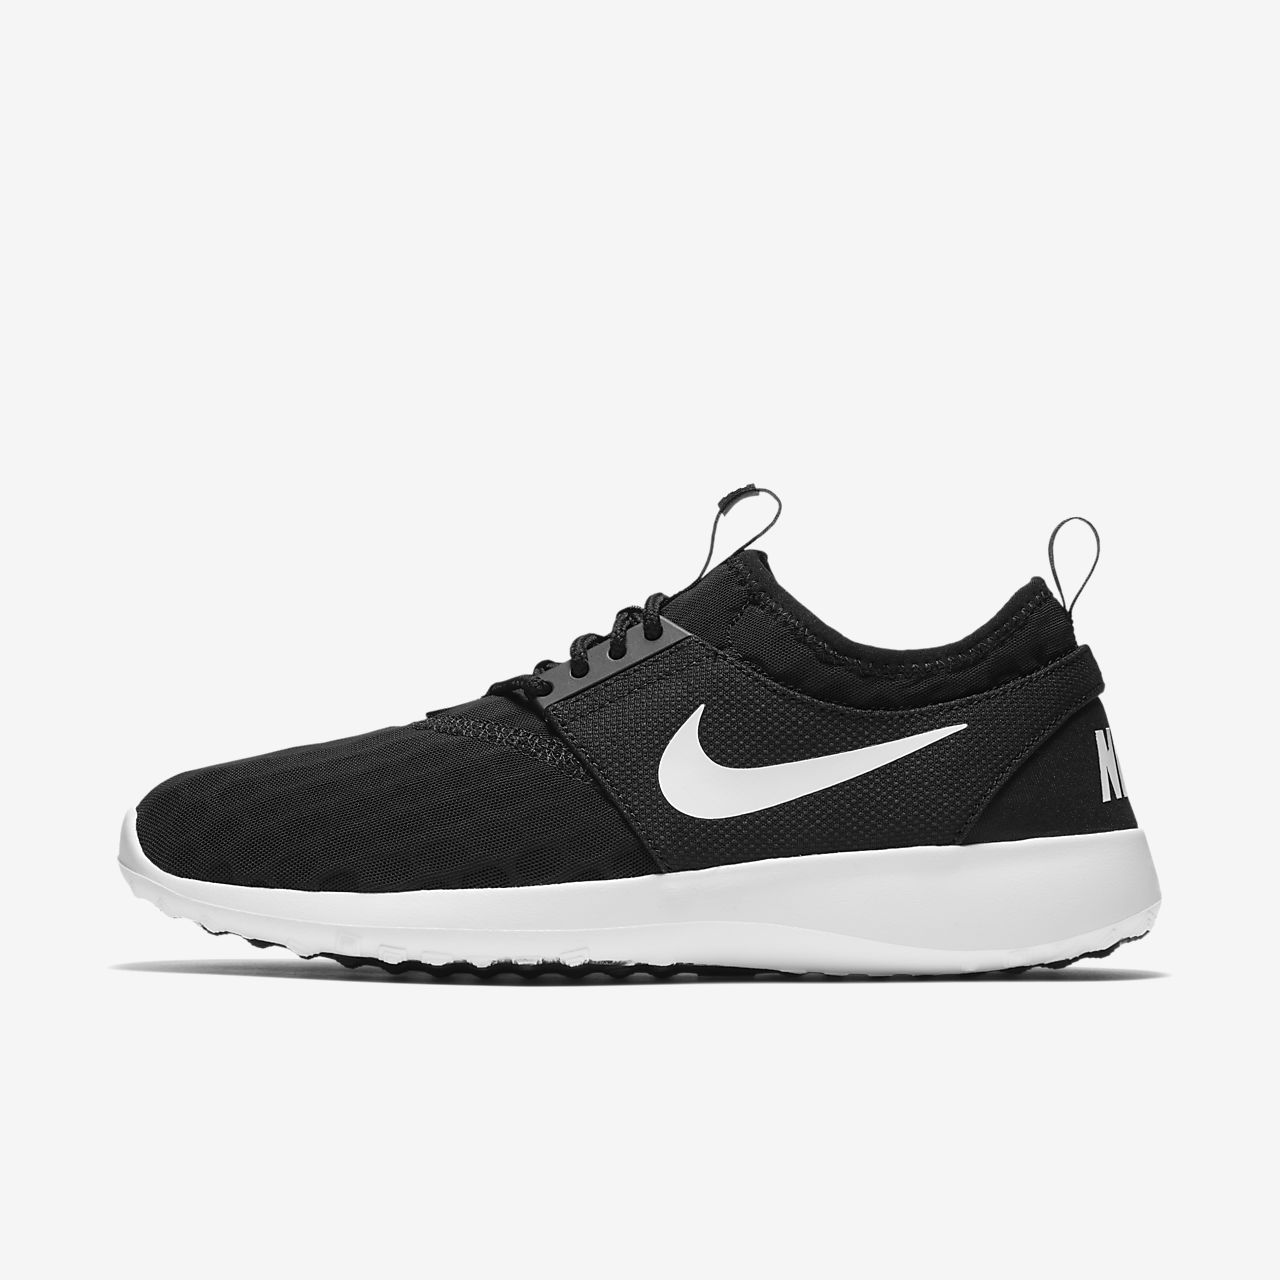 167364f7090d2 Nike Juvenate Women s Shoe. Nike.com